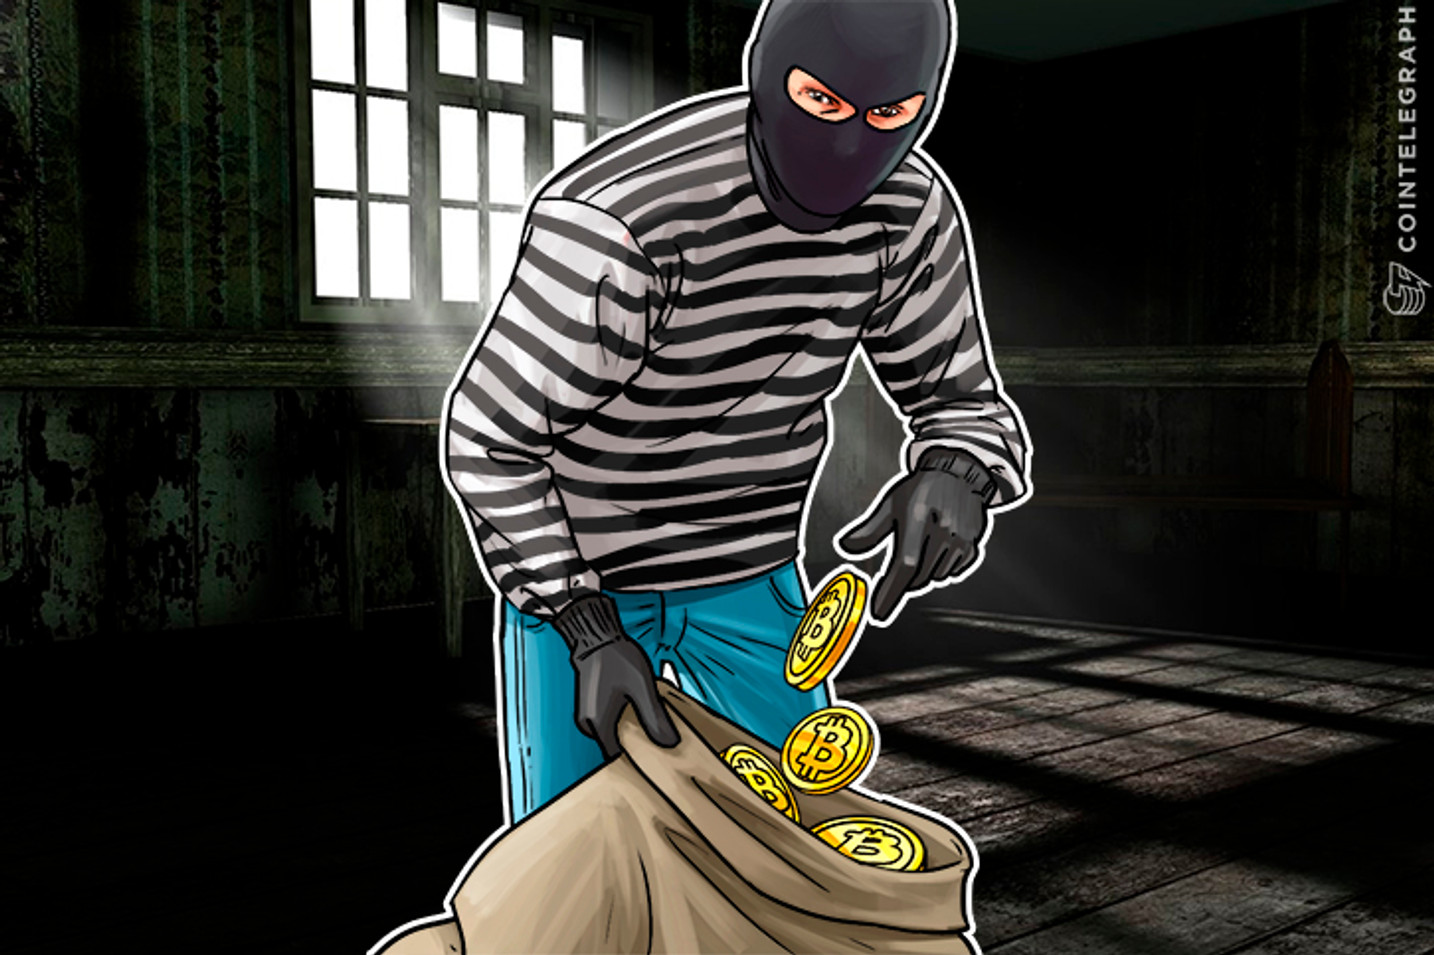 With Scammers Capitalizing On Altcoins Surge, How to Spot New Ponzi Schemes?